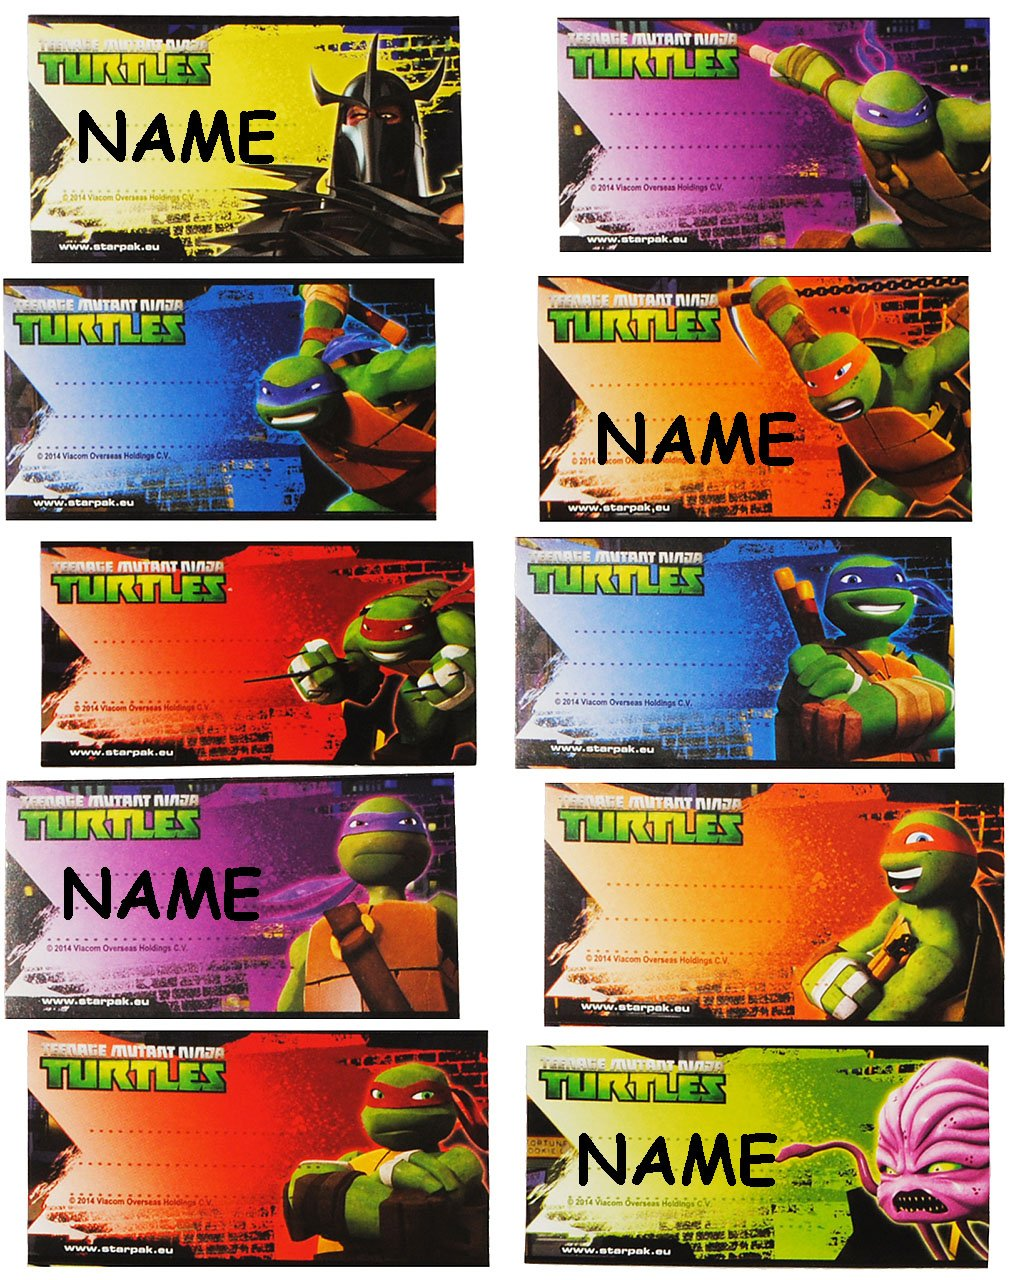 10 Stk. Sticker für Hefte - Teenage Mutant Ninja Turtles ...